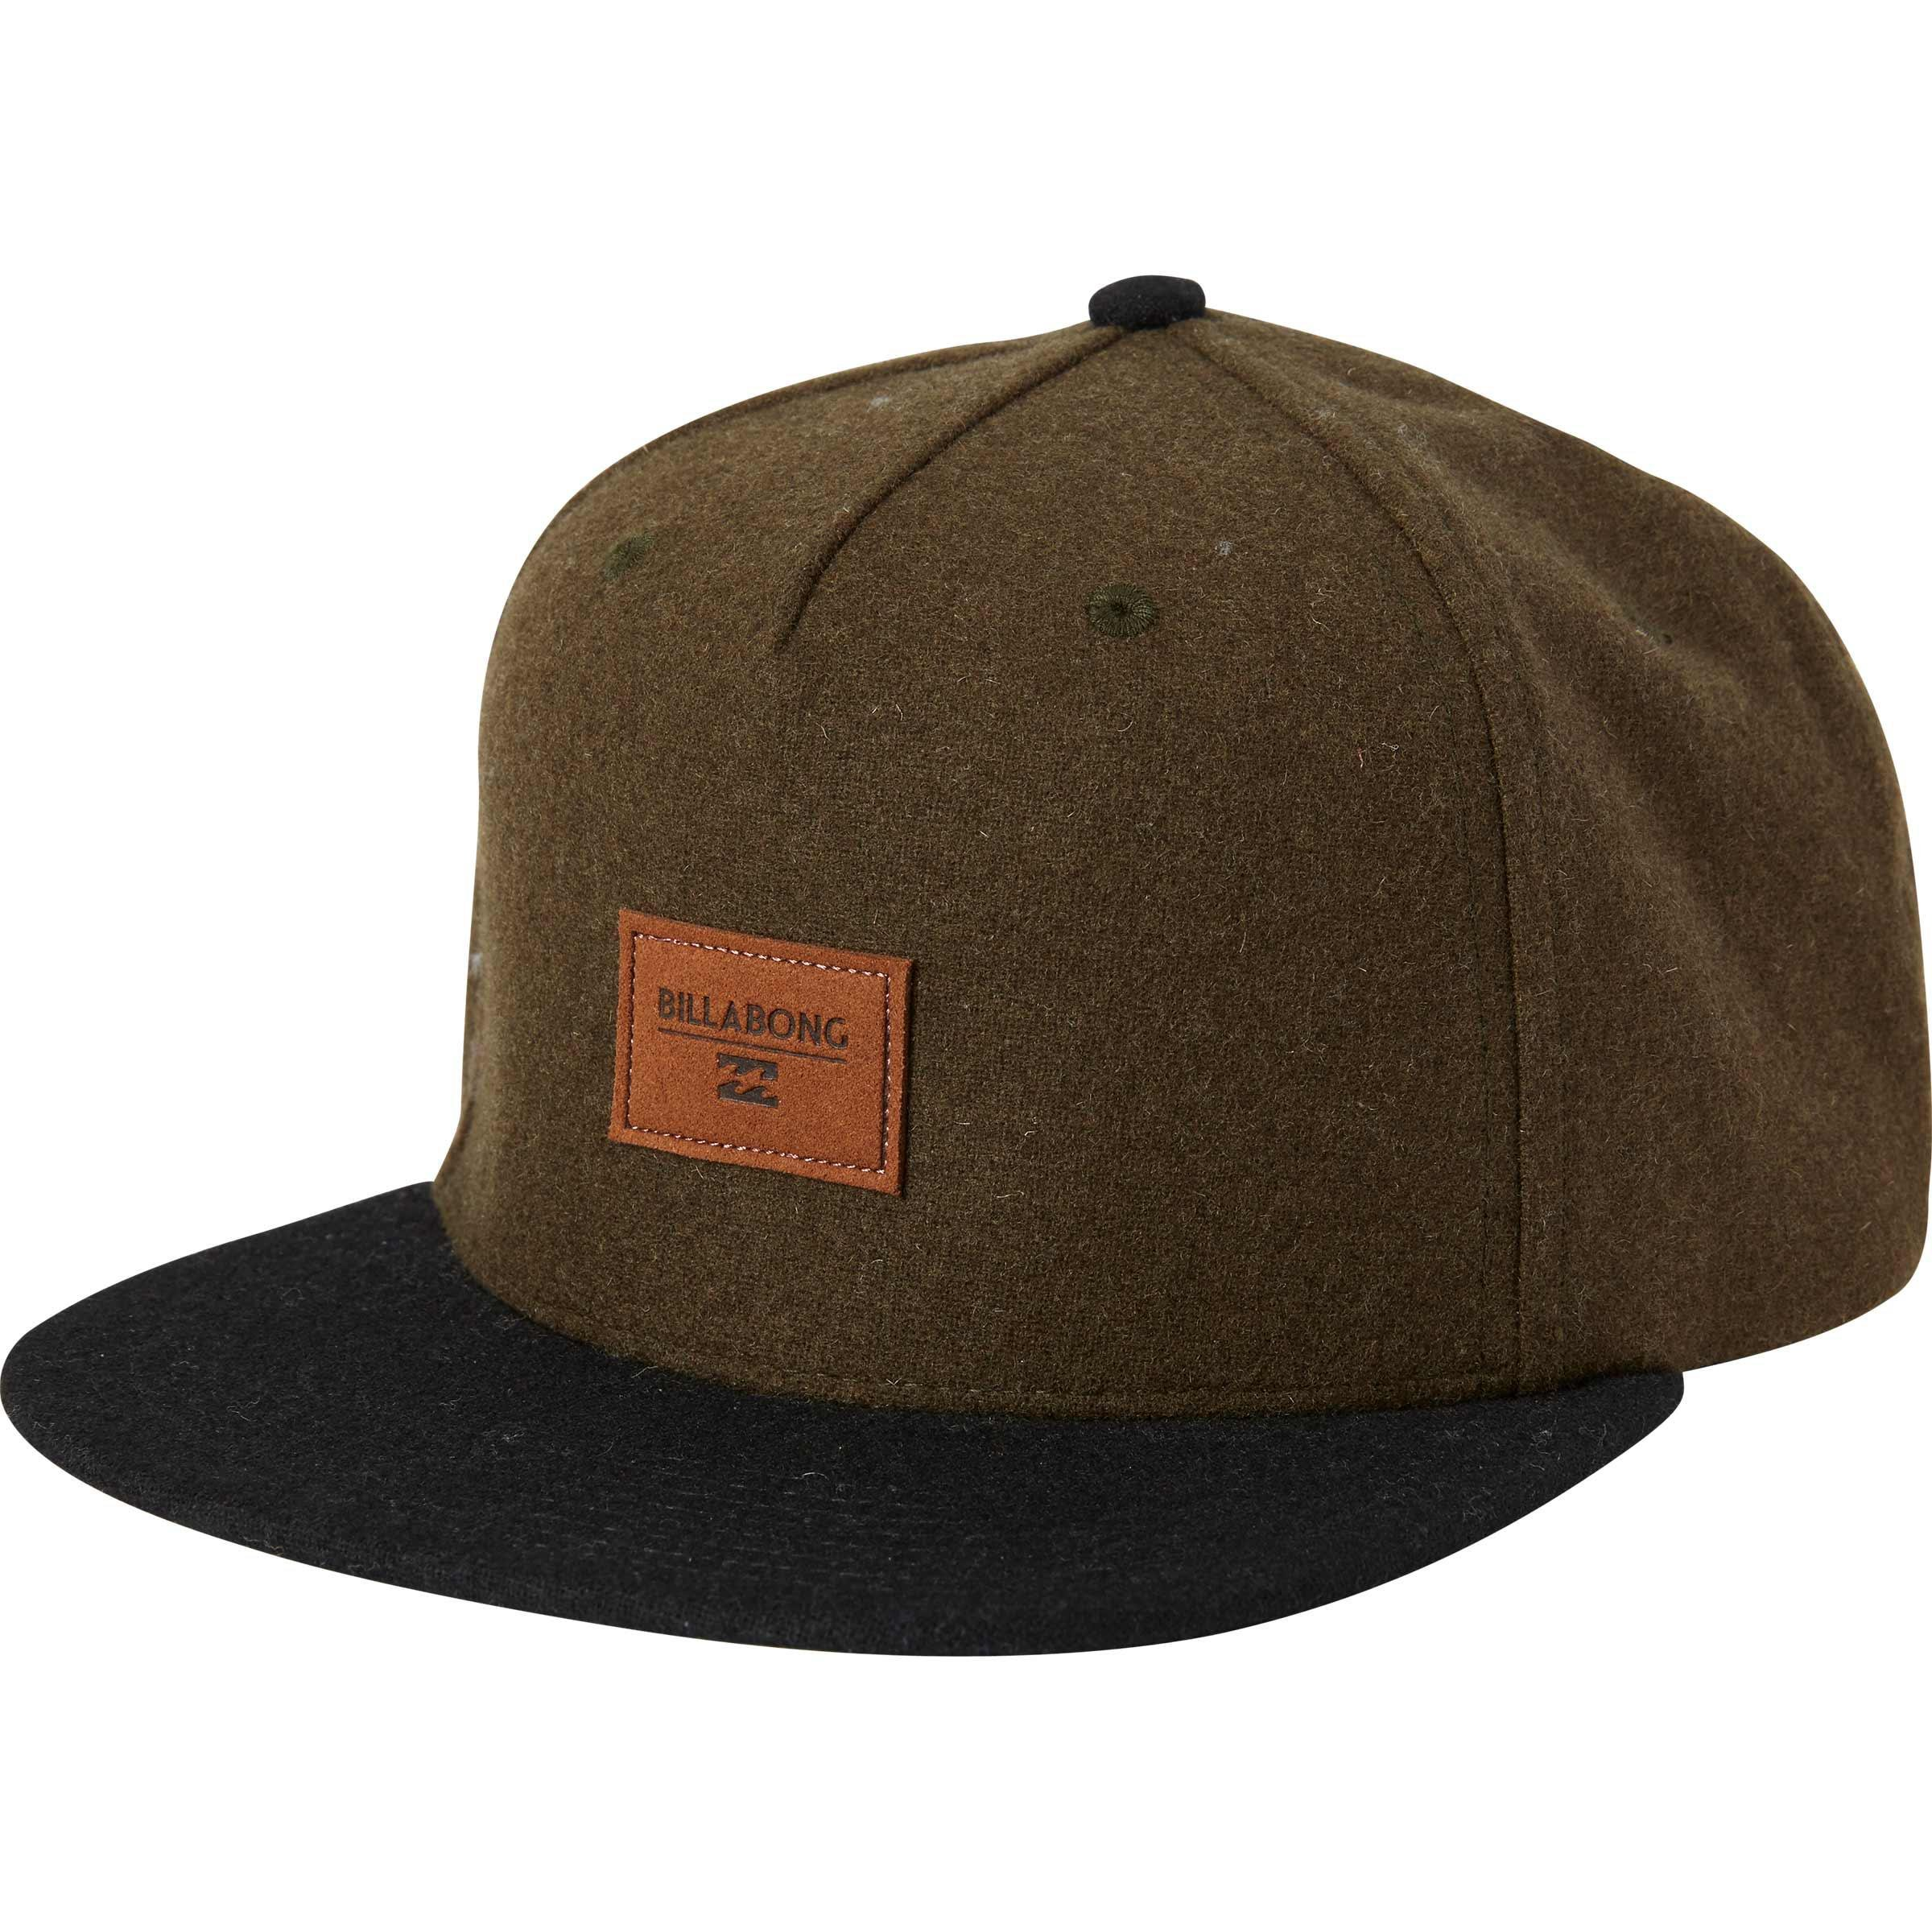 new style 8f9b3 d8ca6 Billabong Oxford Snapback Hat in Green for Men - Lyst